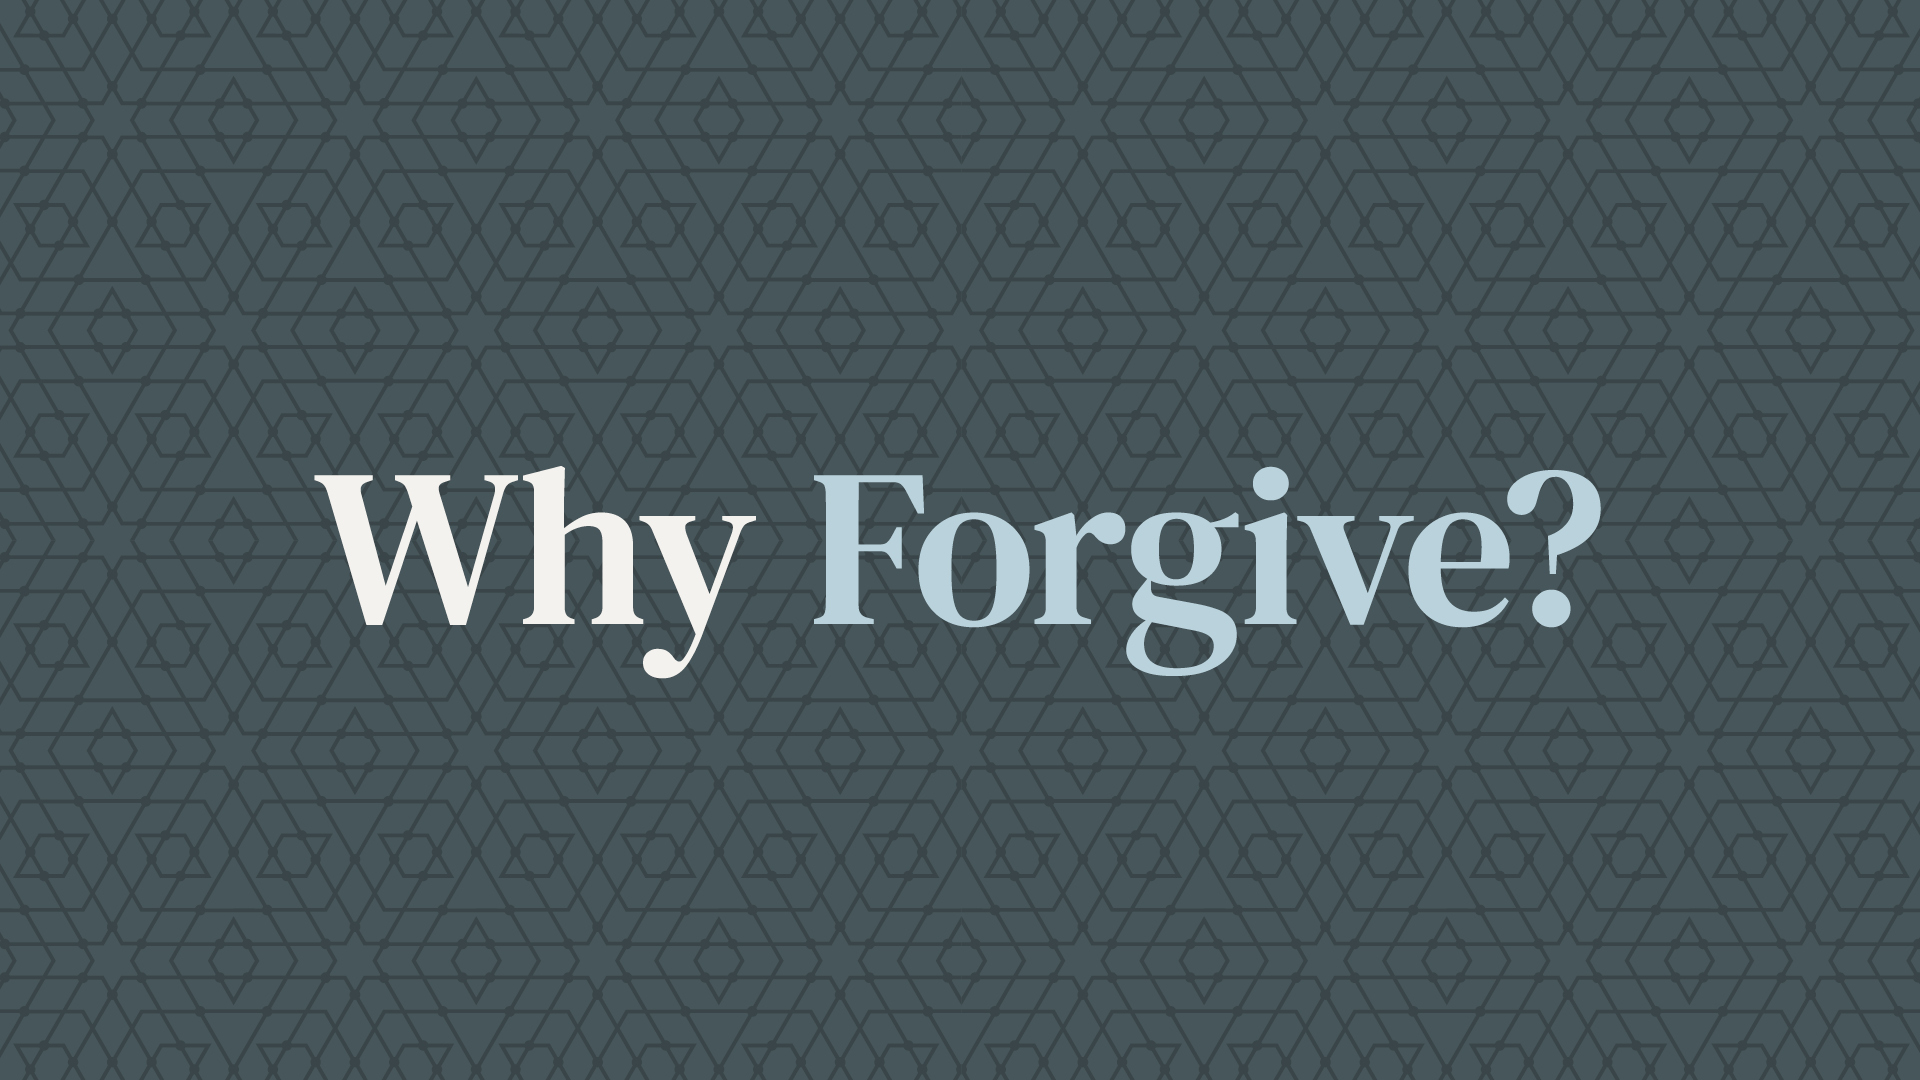 Why Should You Forgive? Hero Image